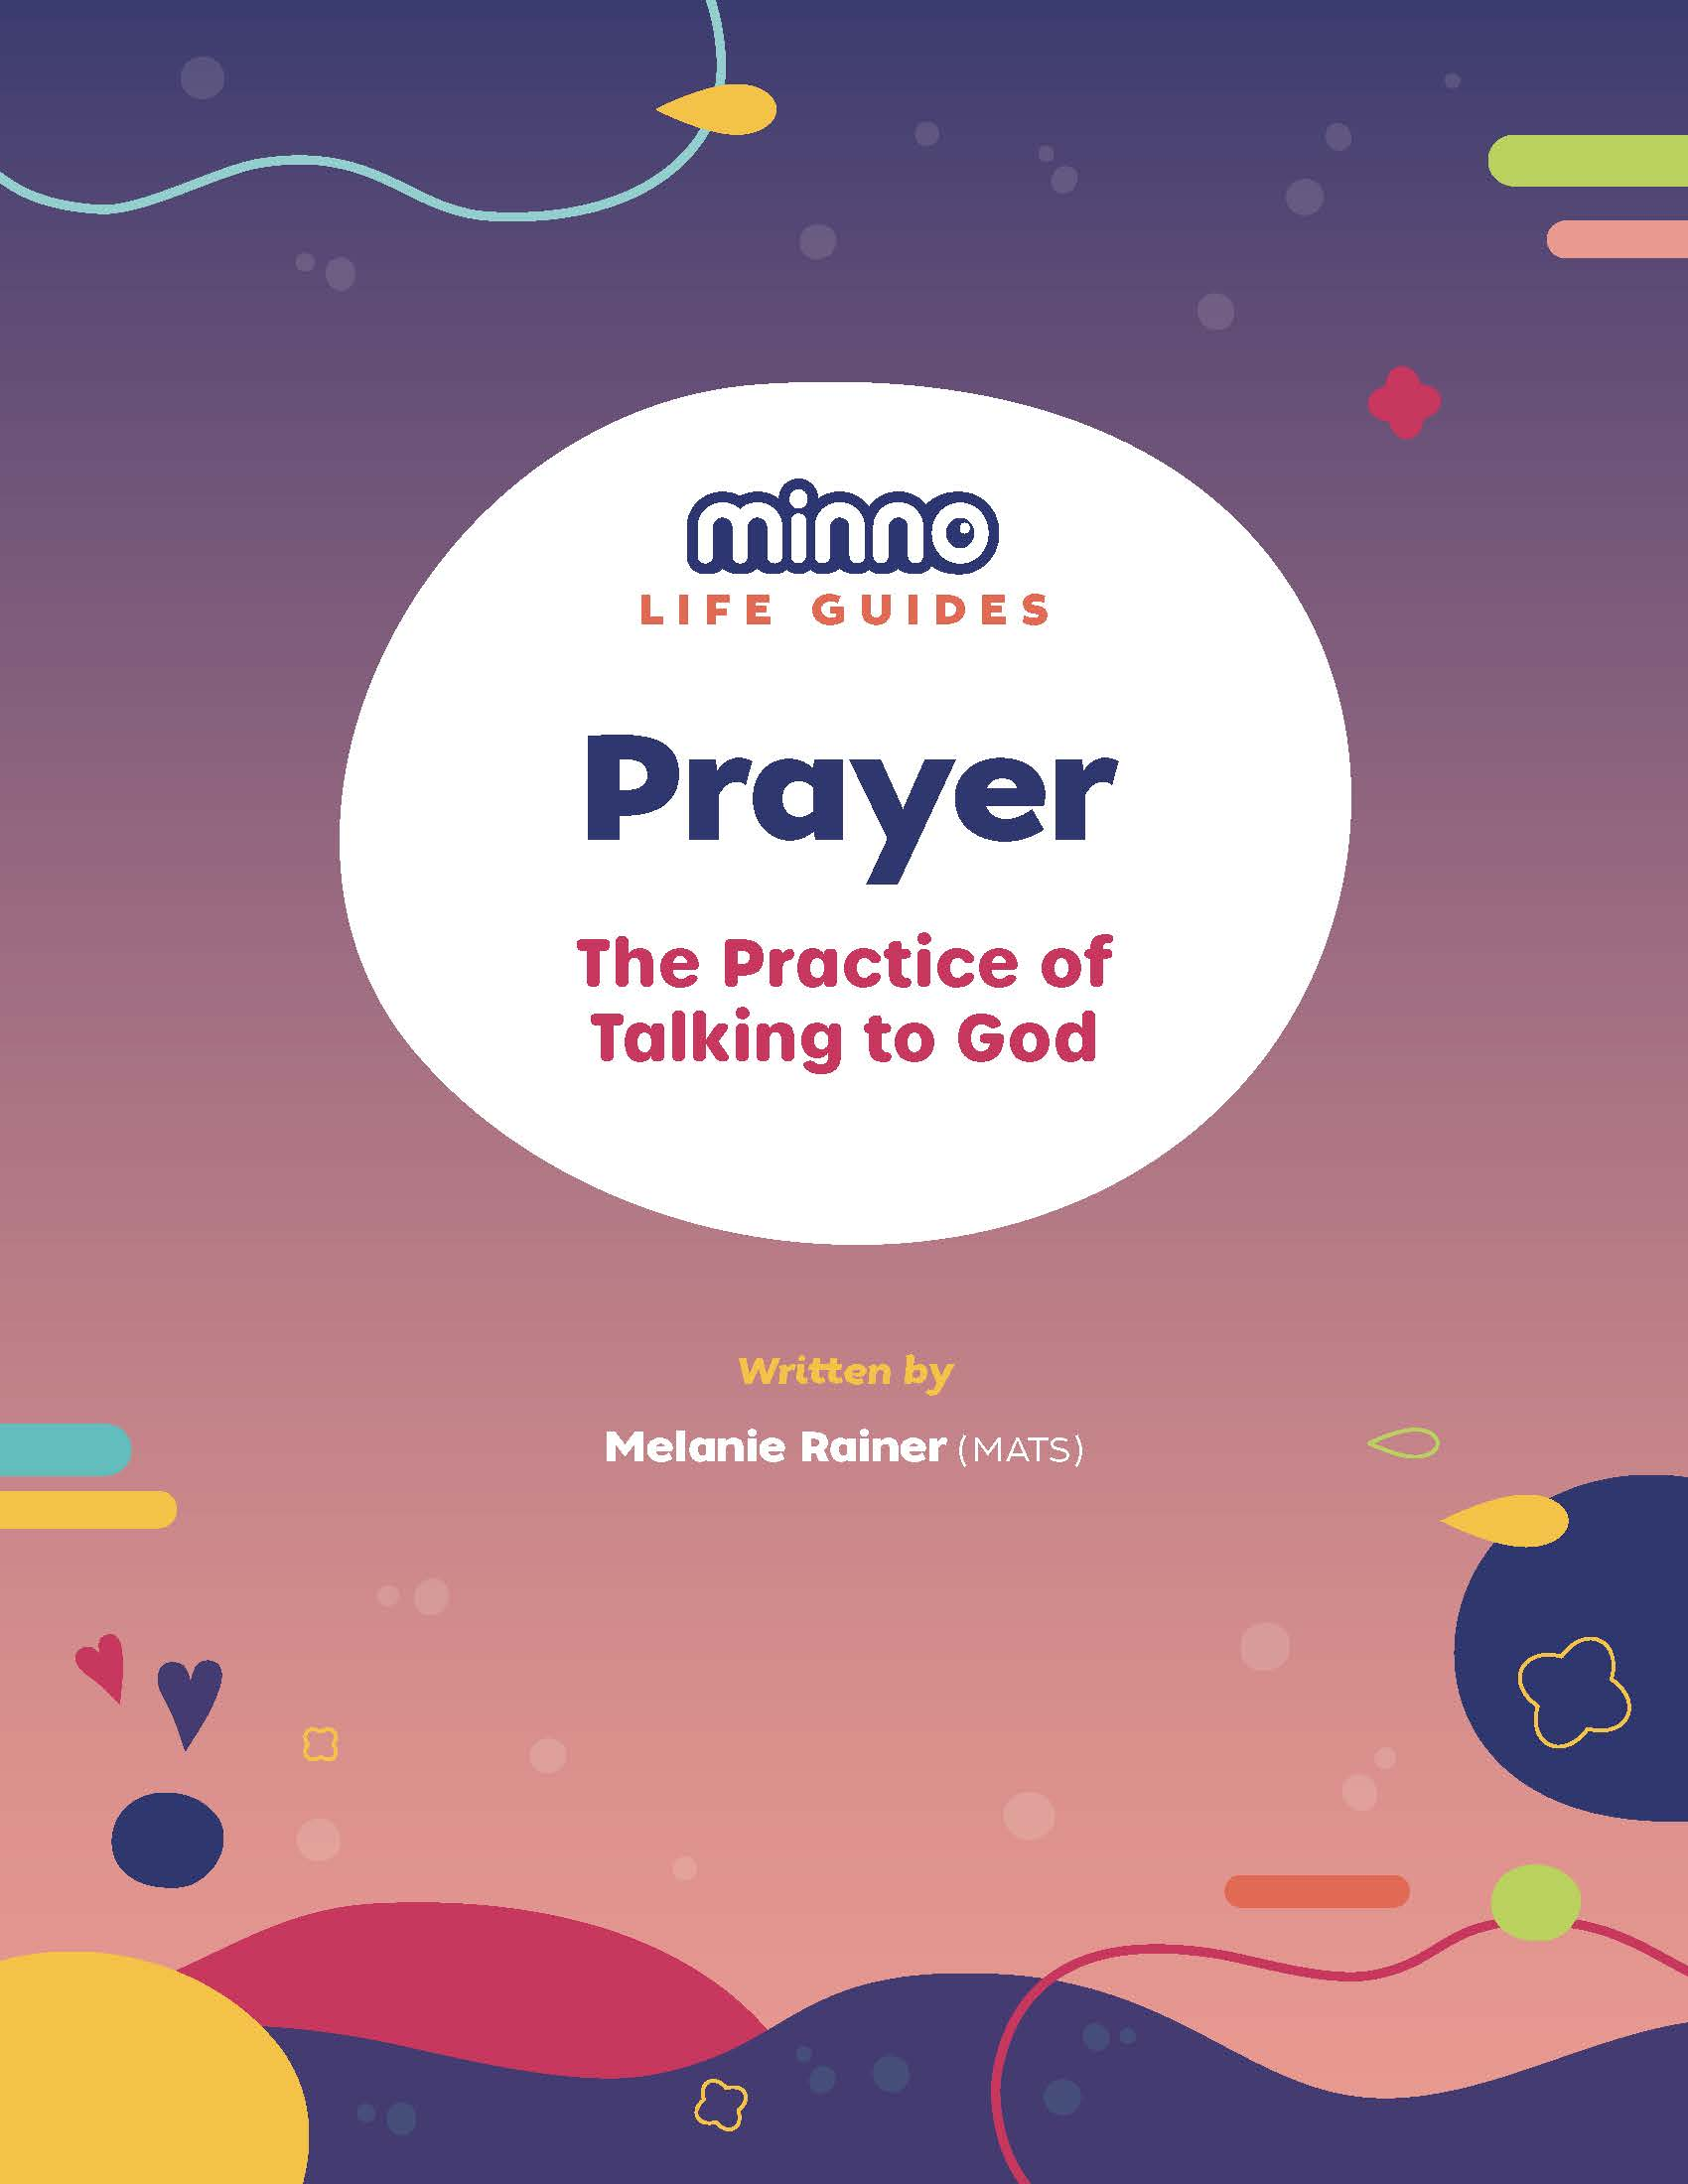 Prayer Minno Life Guide Cover.jpg